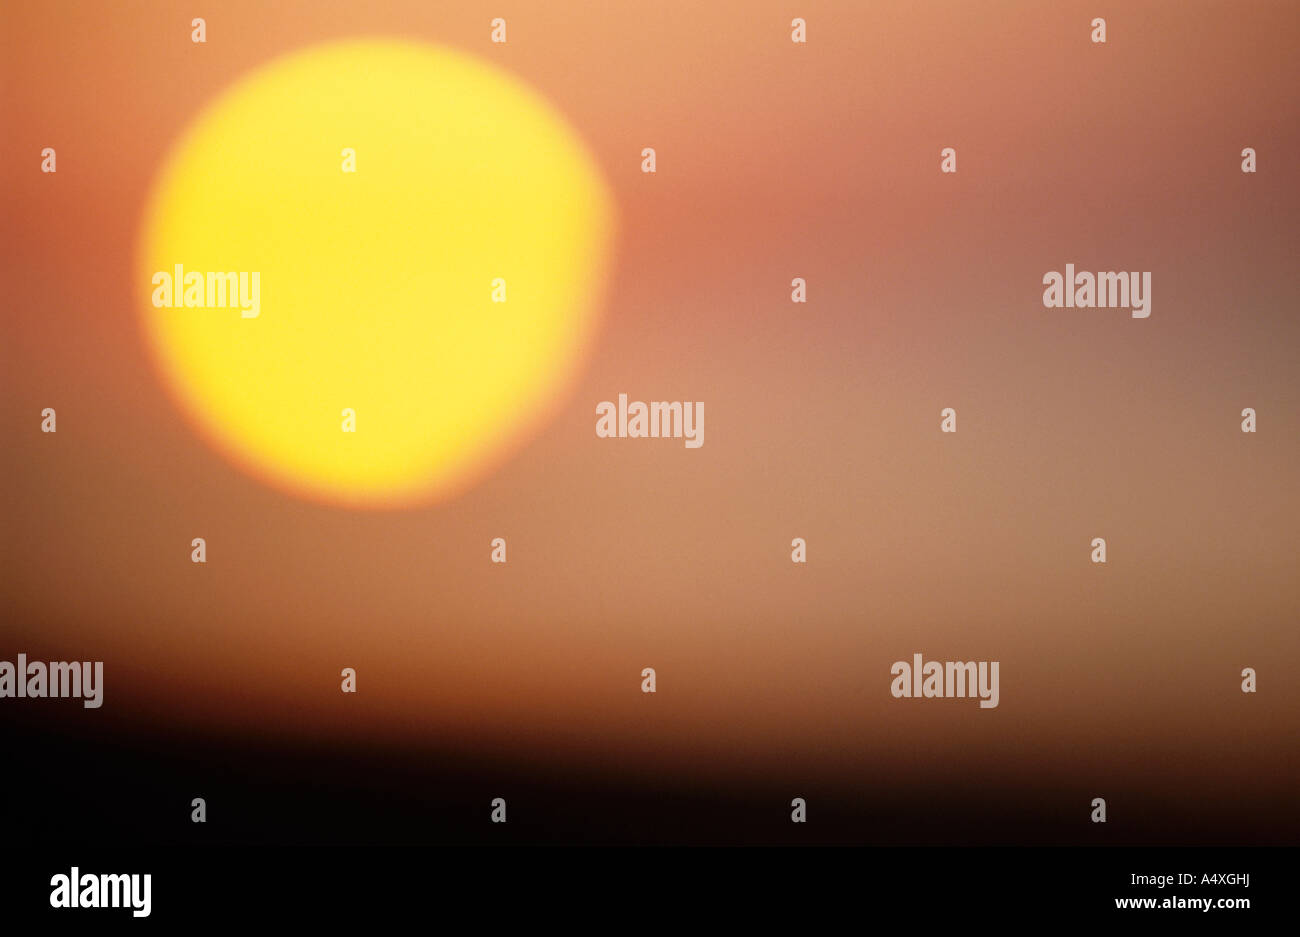 Sun in the sky at dawn - Stock Image